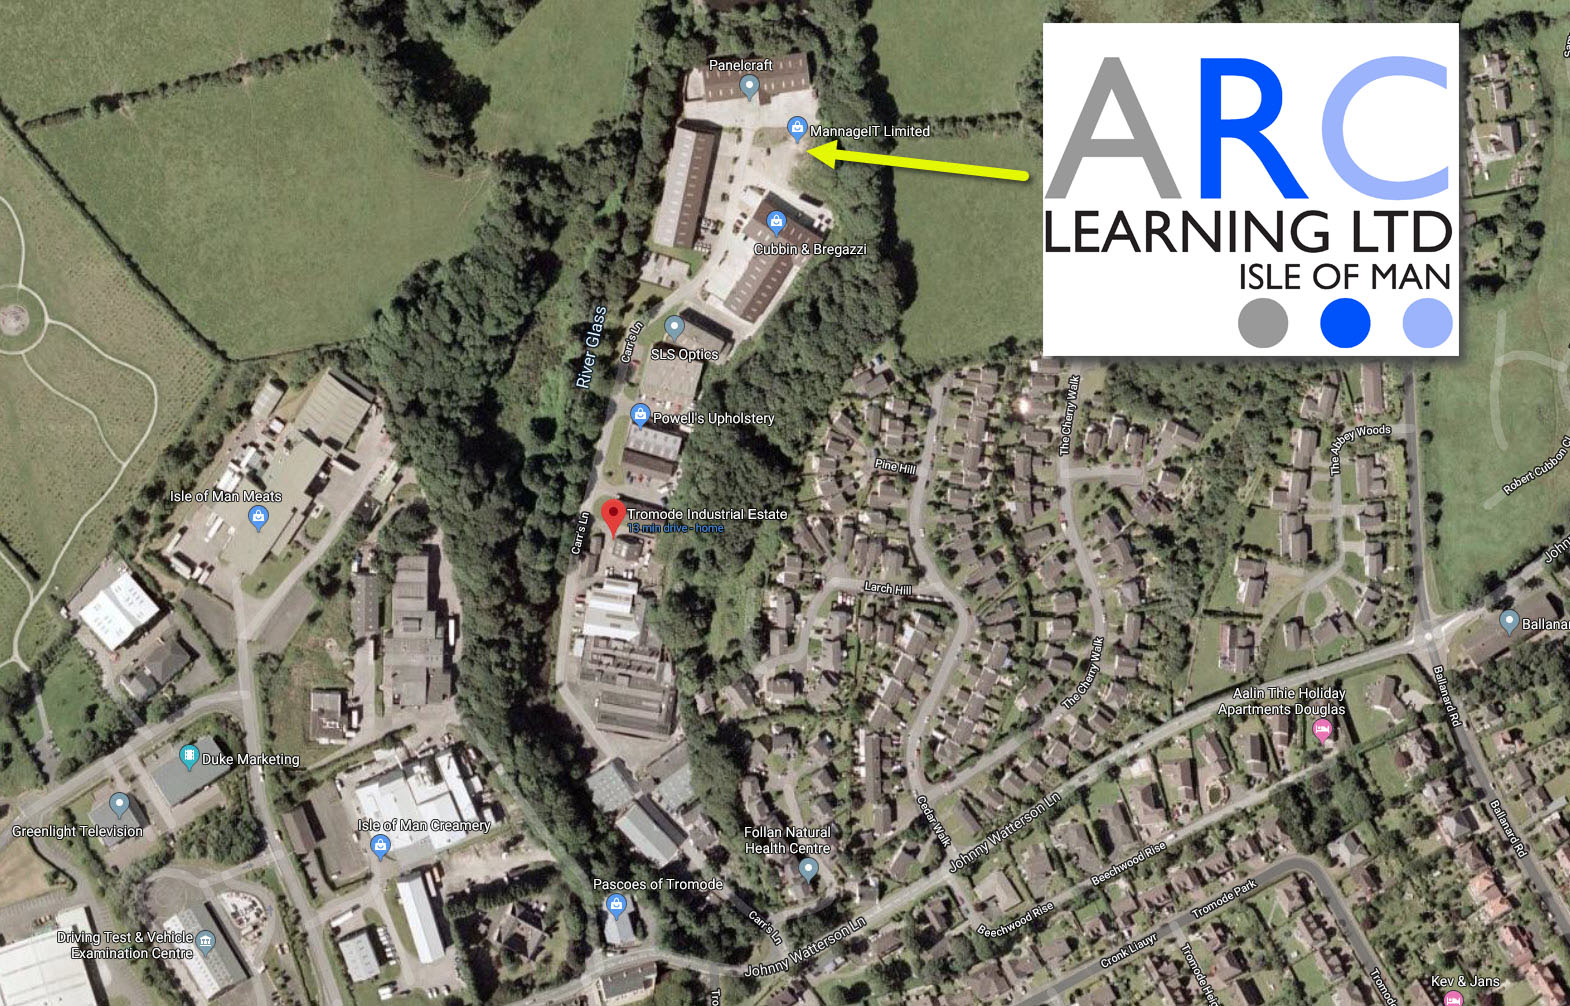 ARC Learning Isle of Man Location Map